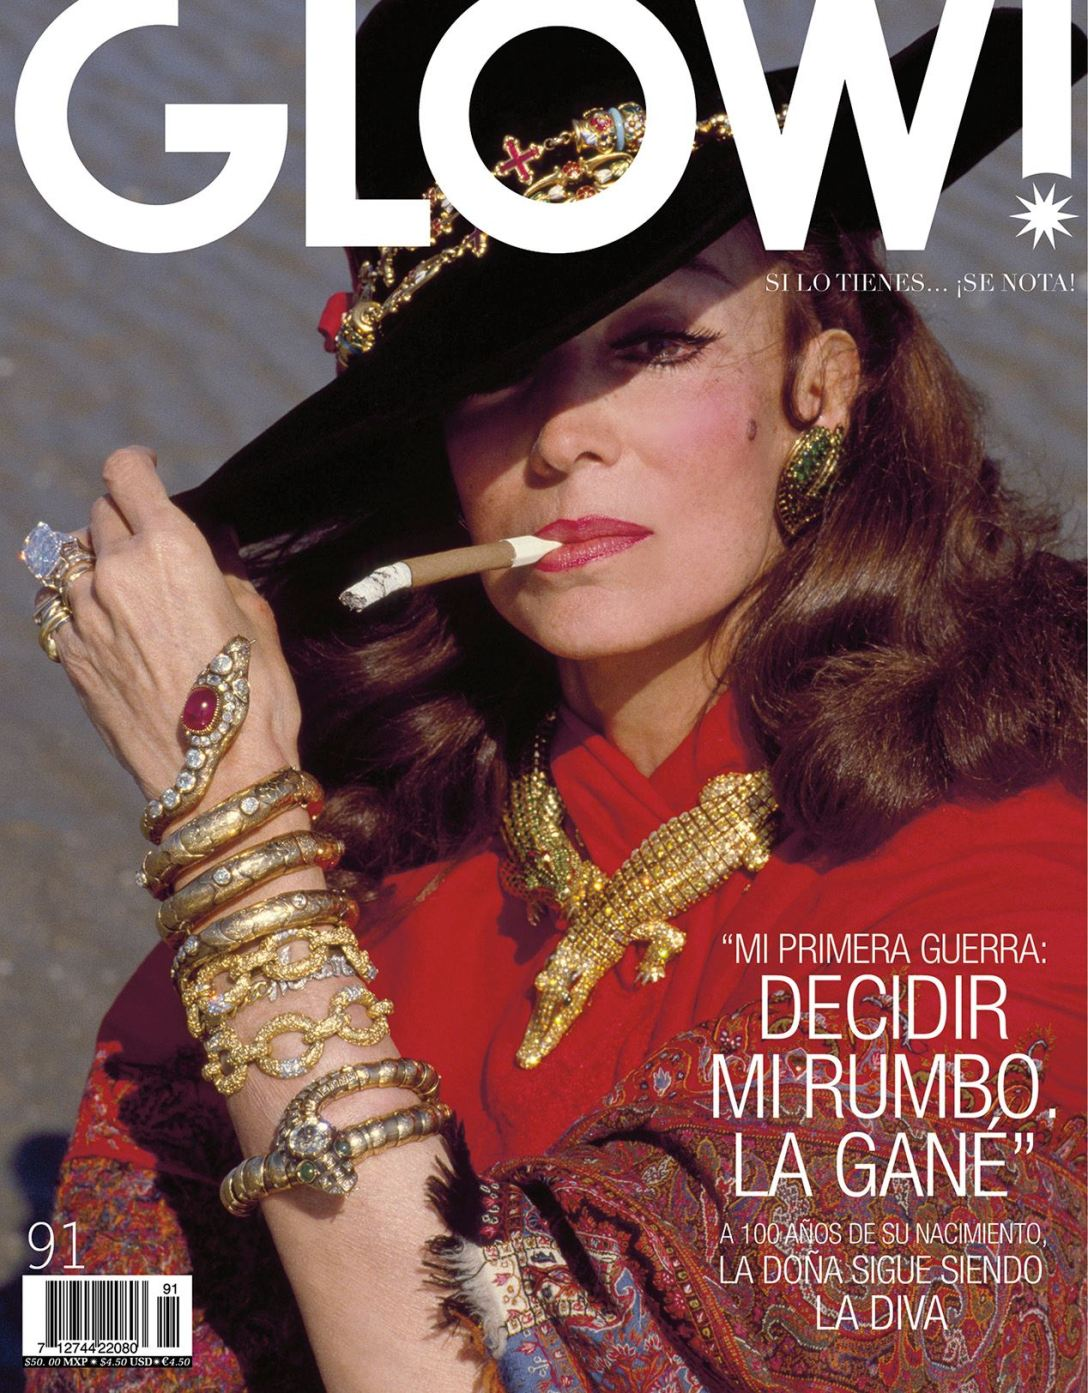 GLOW! Cover. Abril 2014.